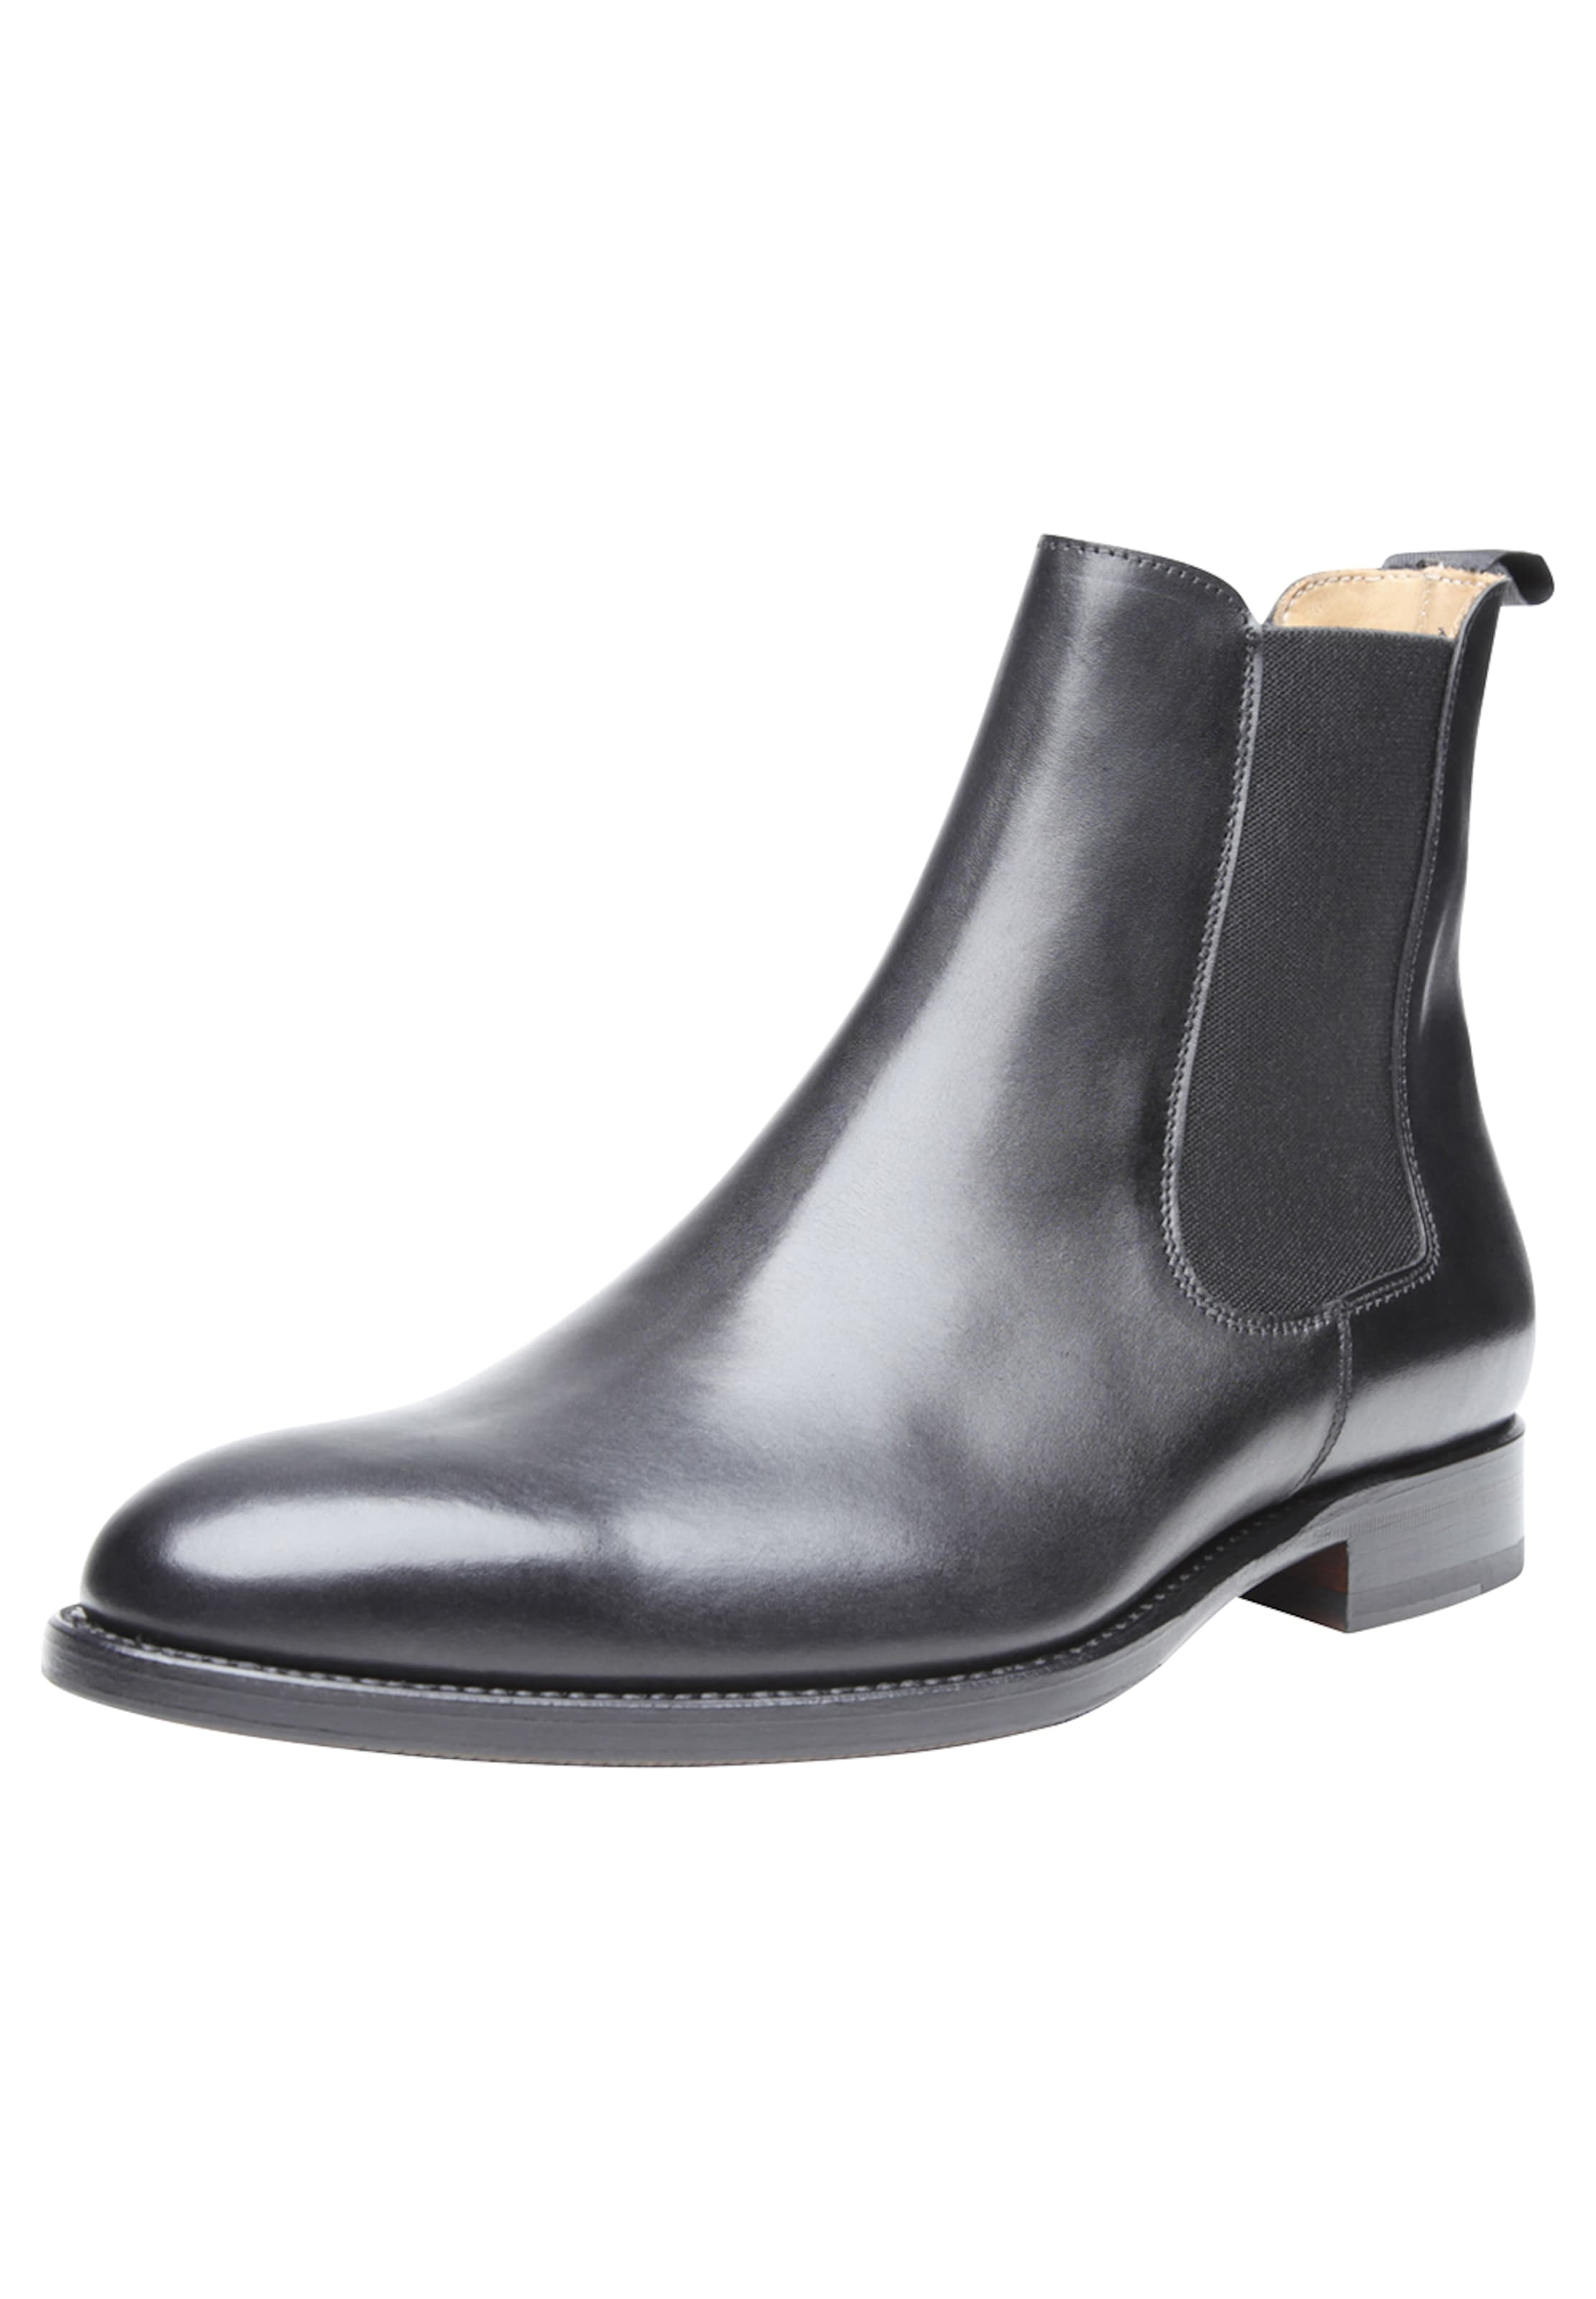 Boots In Boots 'no643' In 'no643' Shoepassion Shoepassion Schwarz Shoepassion Schwarz zqGVMUpS